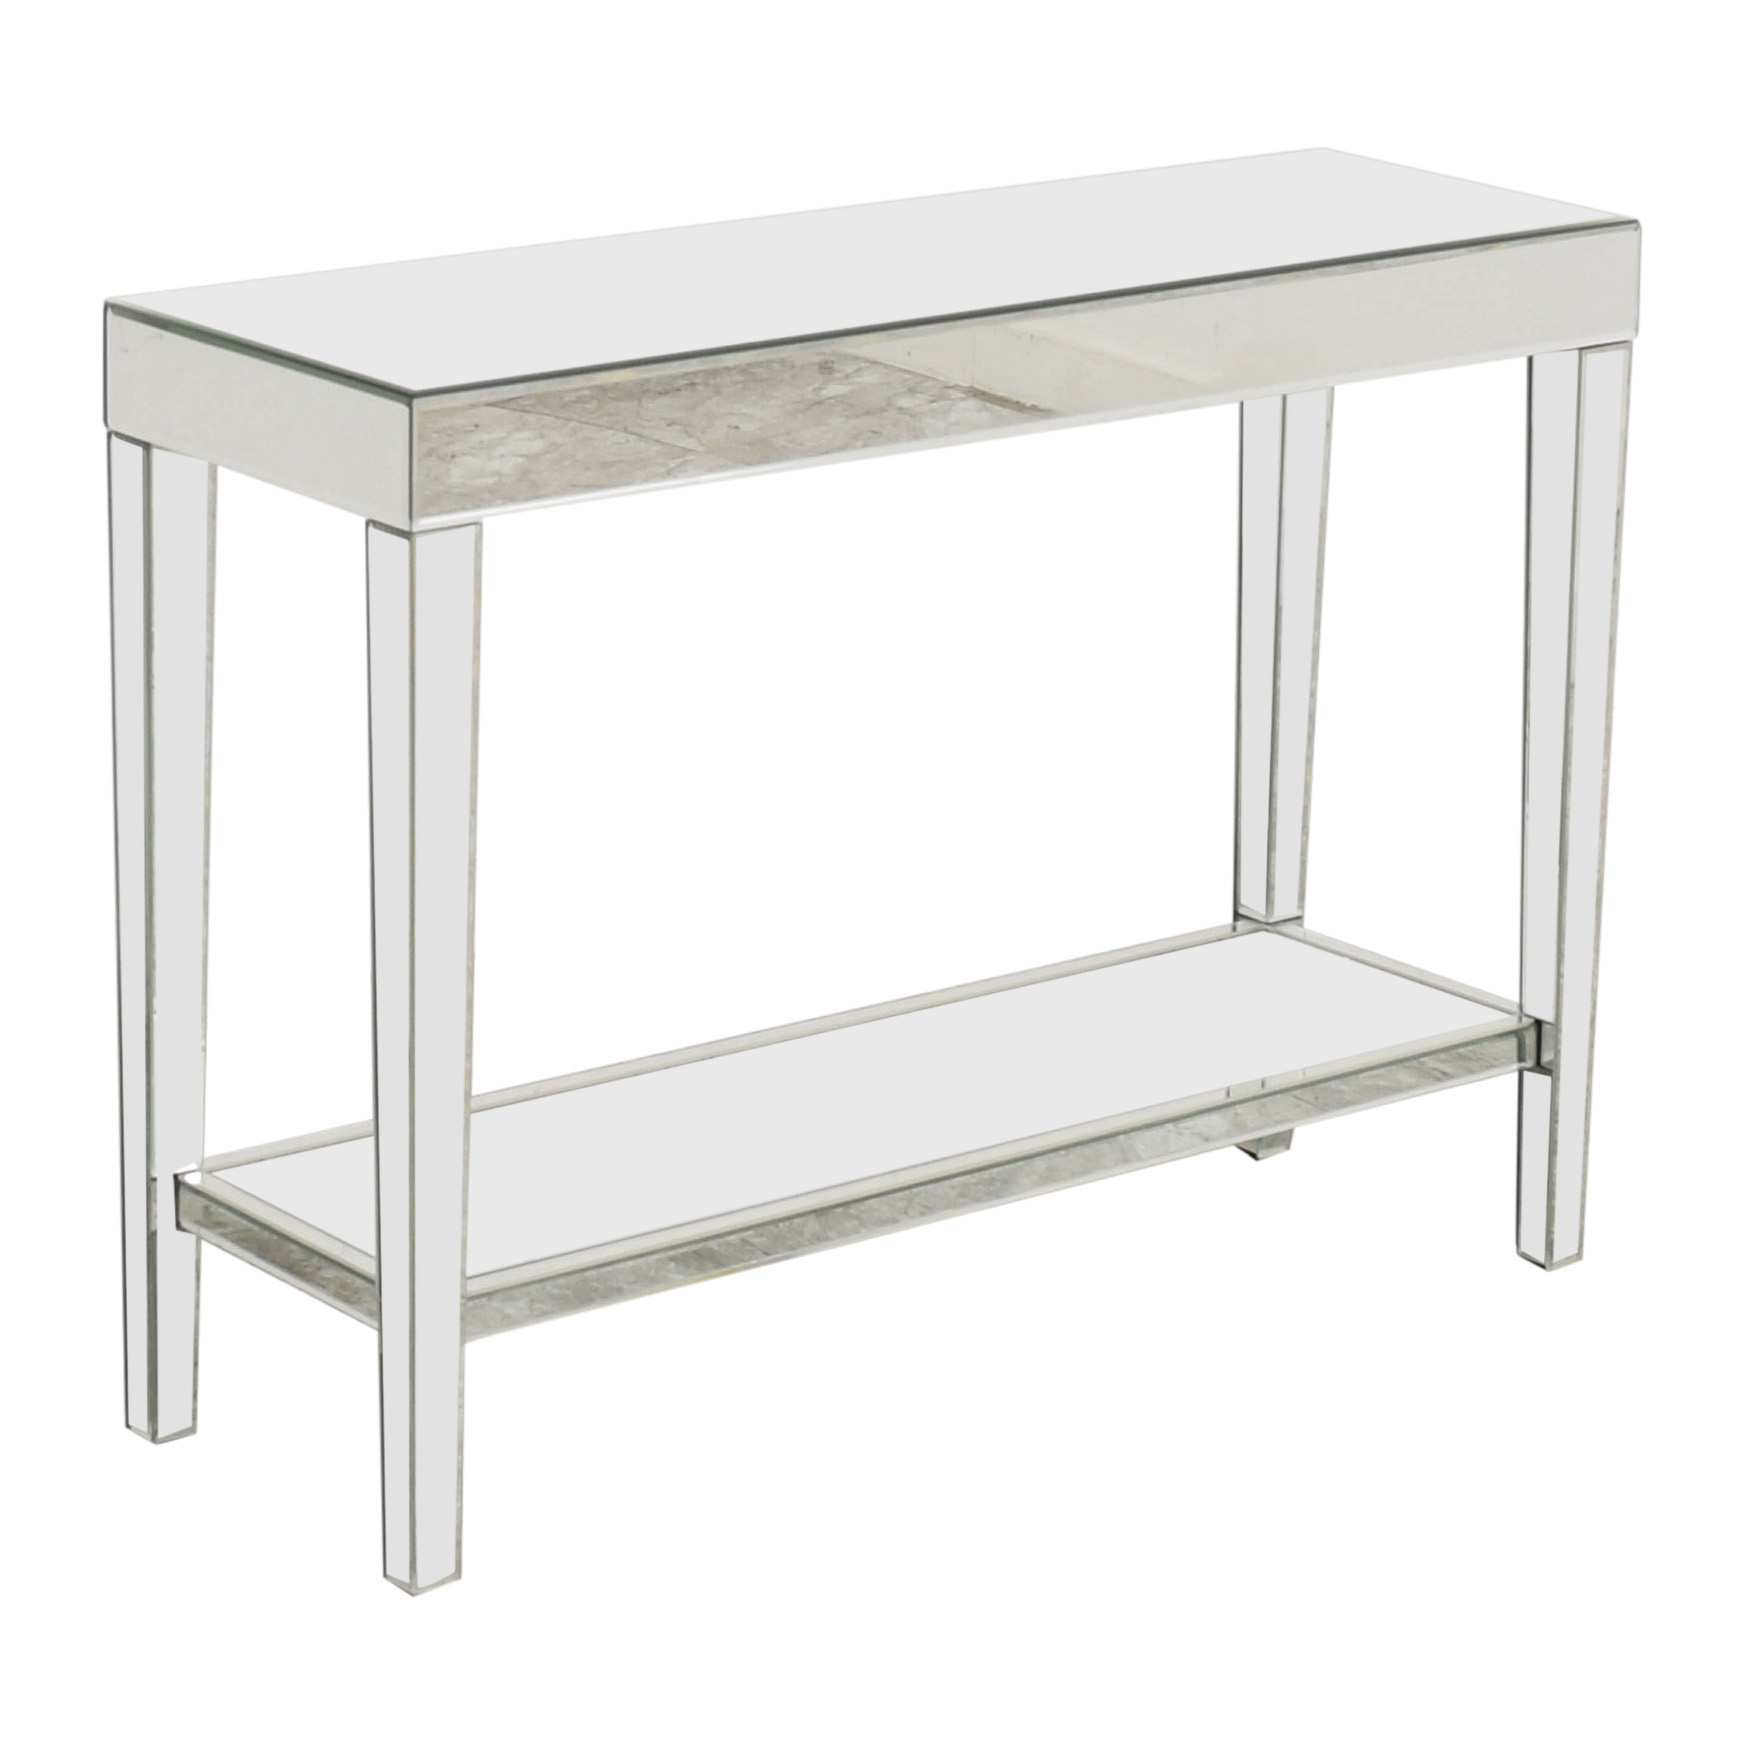 Howard Elliot Collection Howard Elliott Orion Mirrored Console Table With Shelf